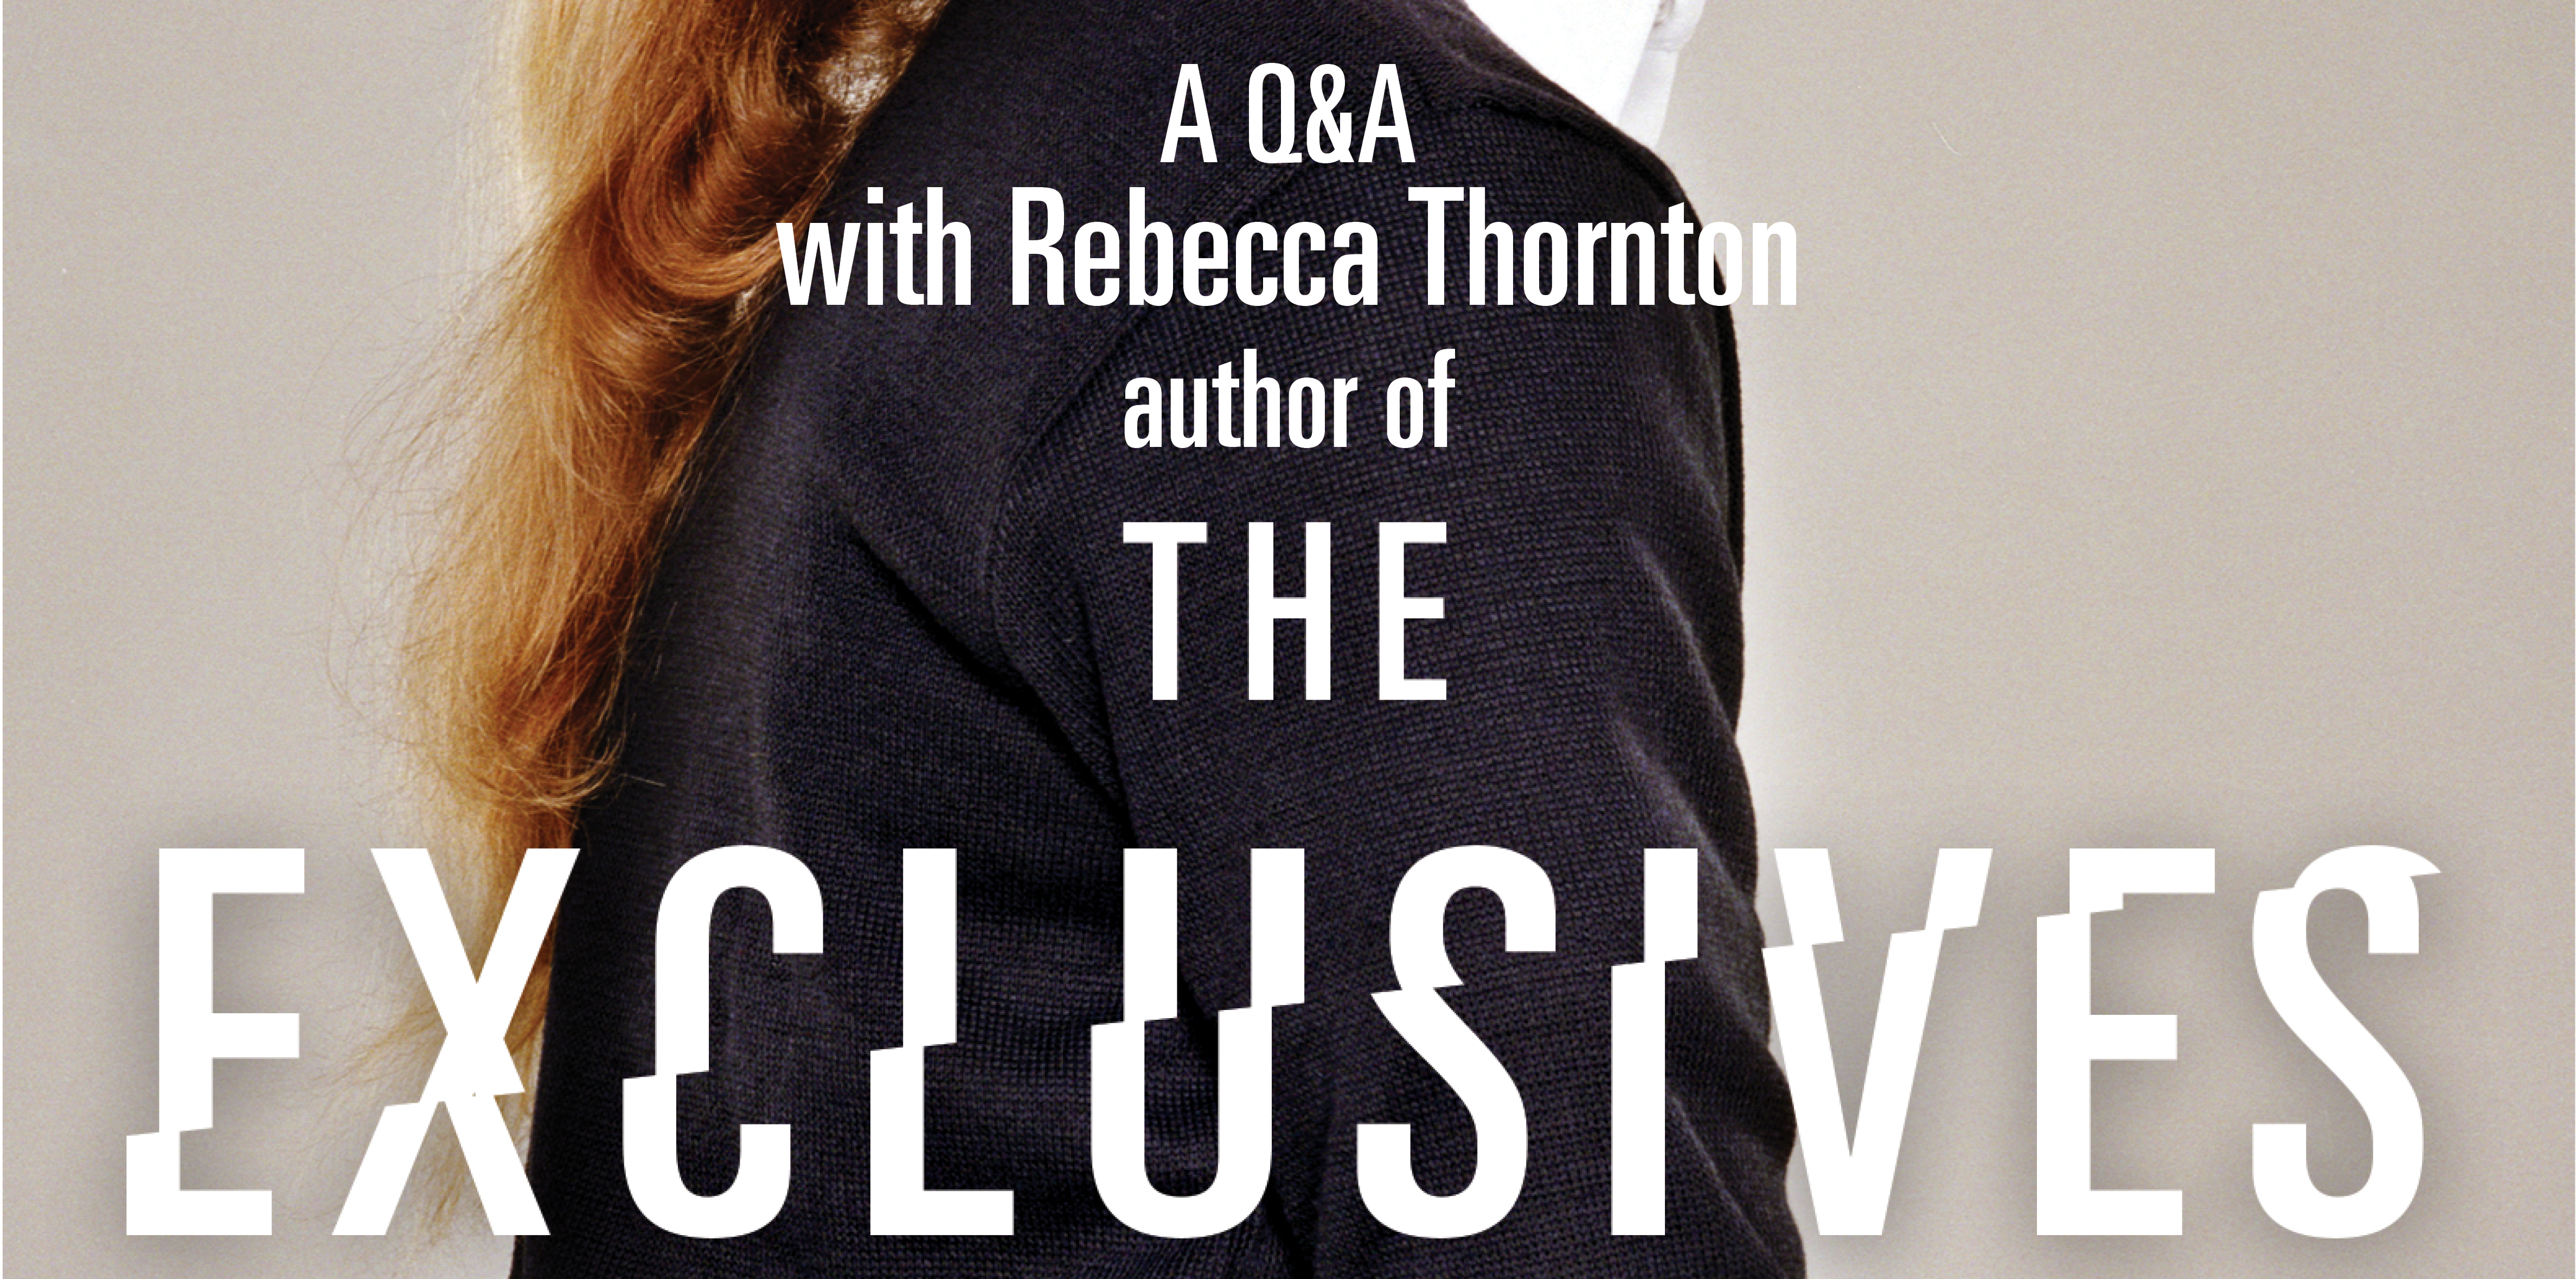 Q&A with Rebecca Thornton